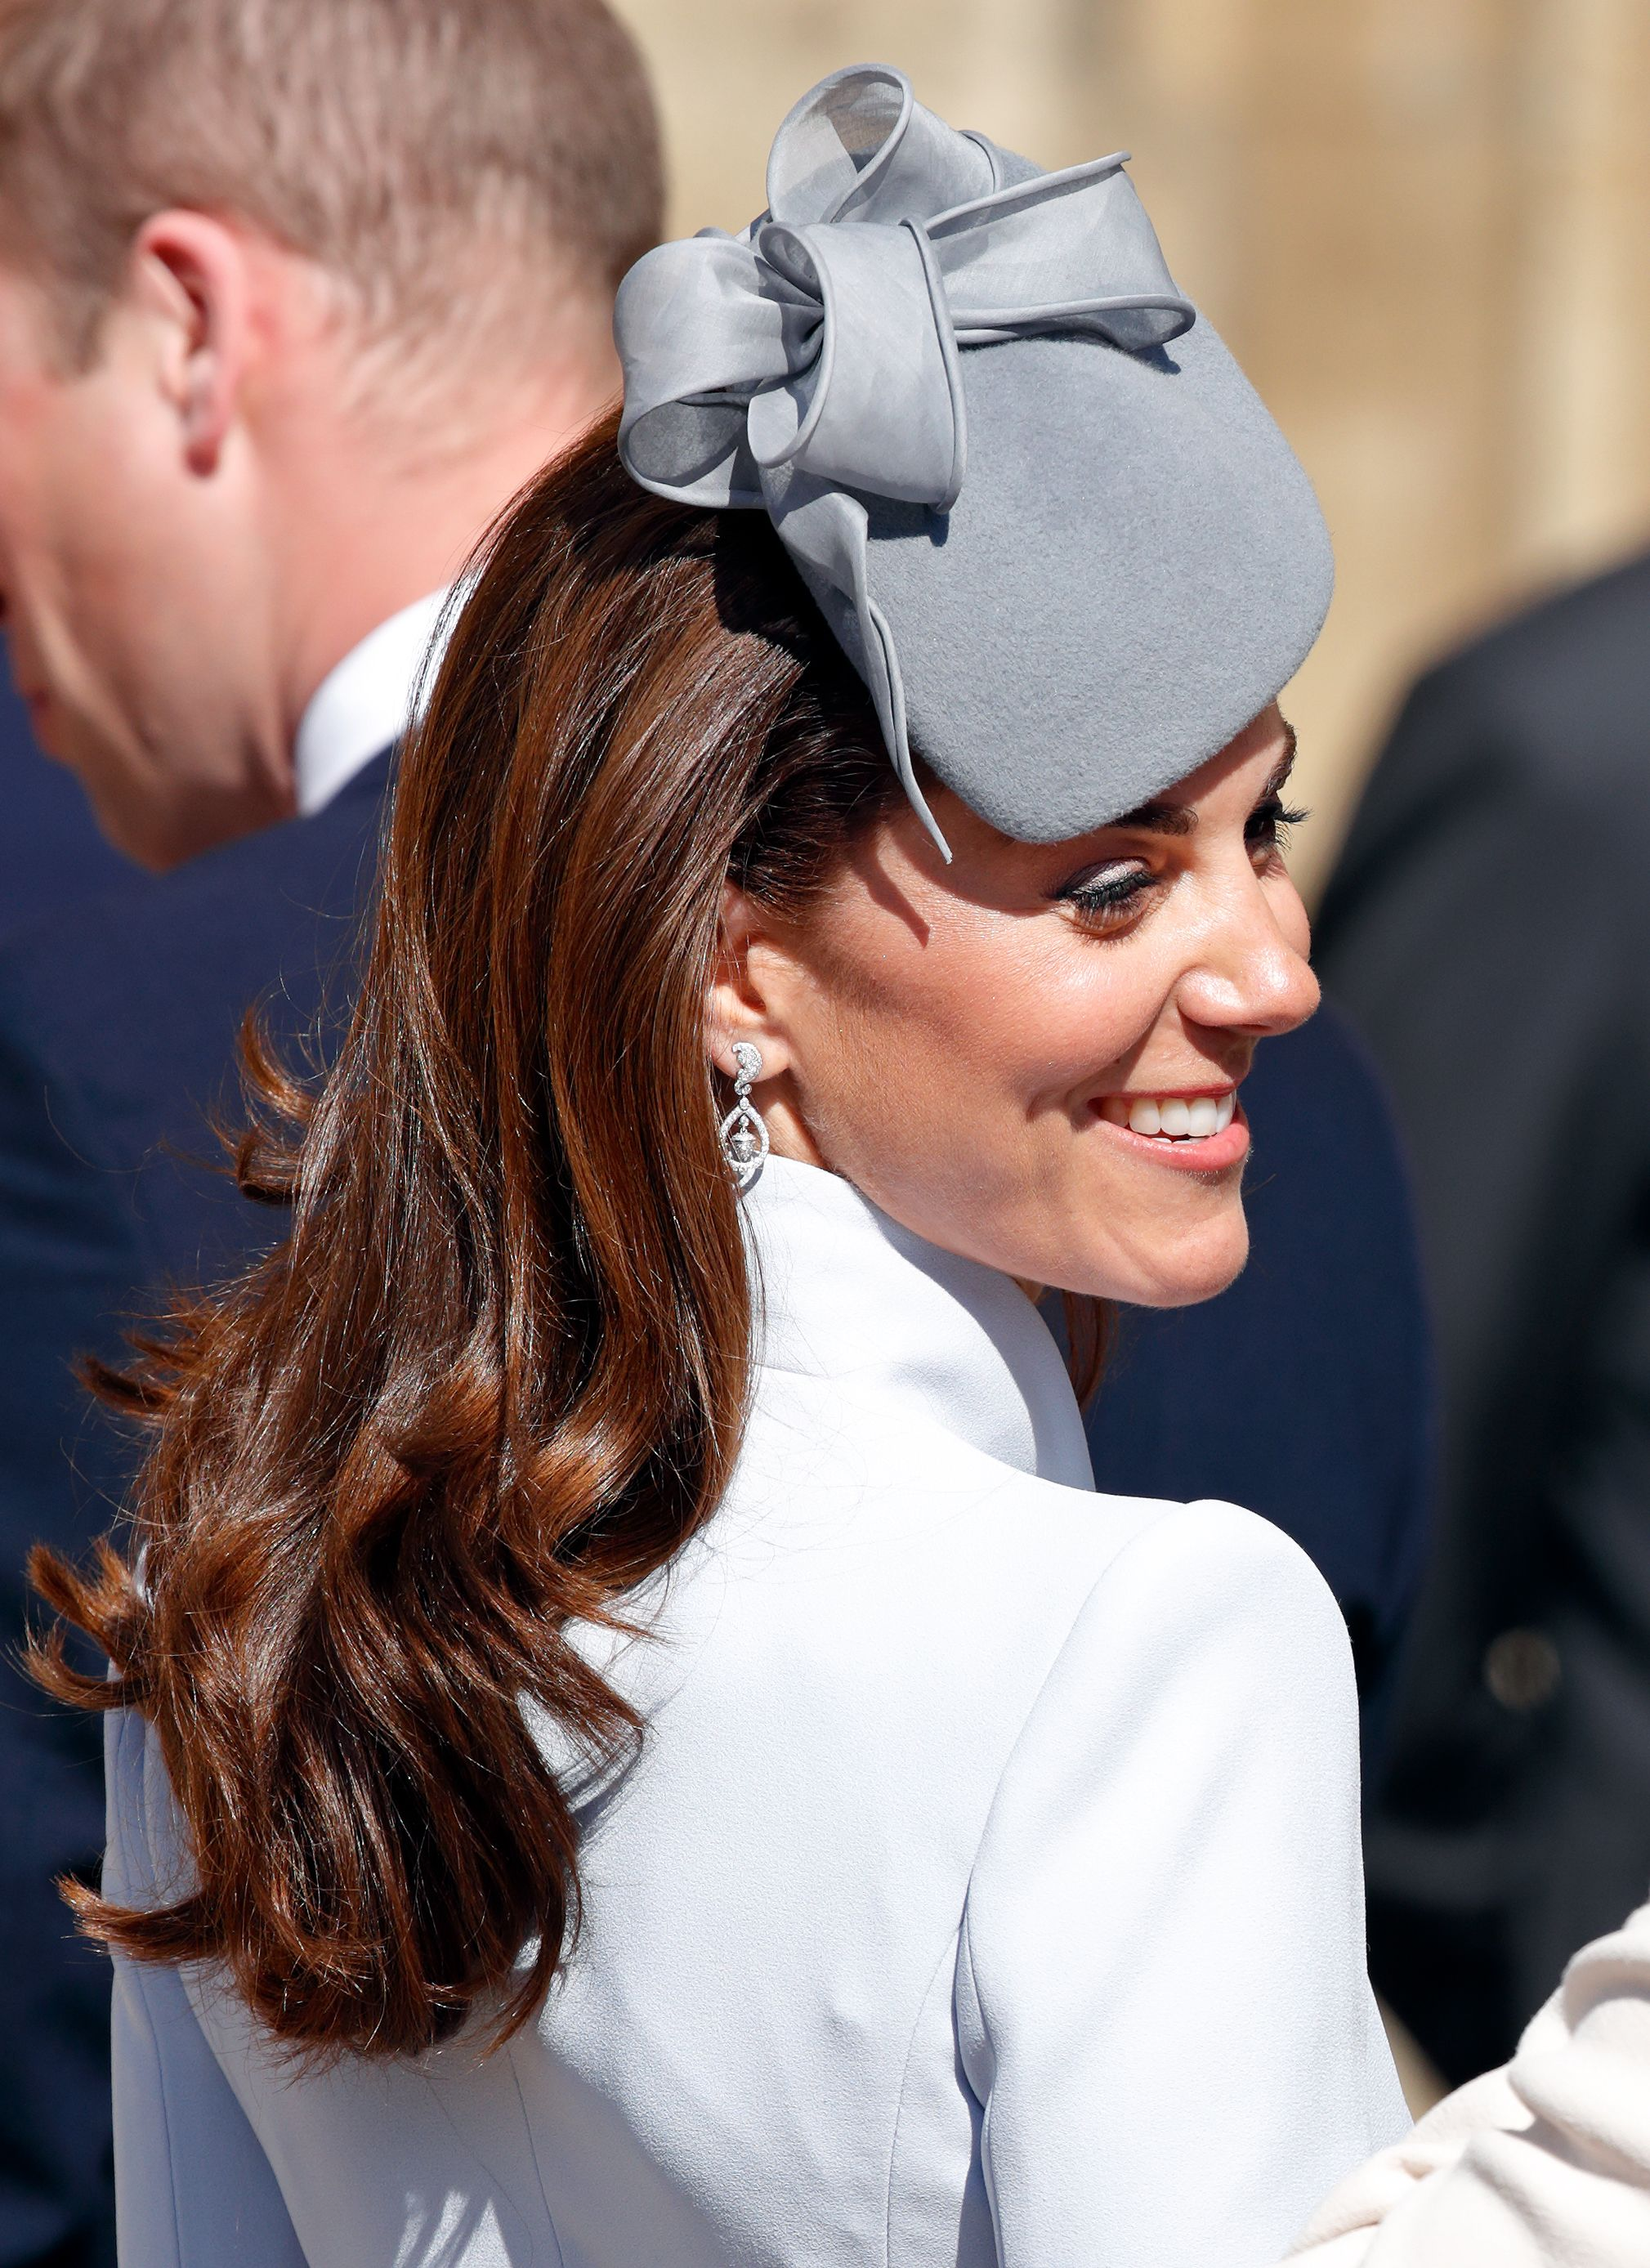 Kate Middleton May Have Just Quietly Observed Her Wedding Anniversary through Jewelry